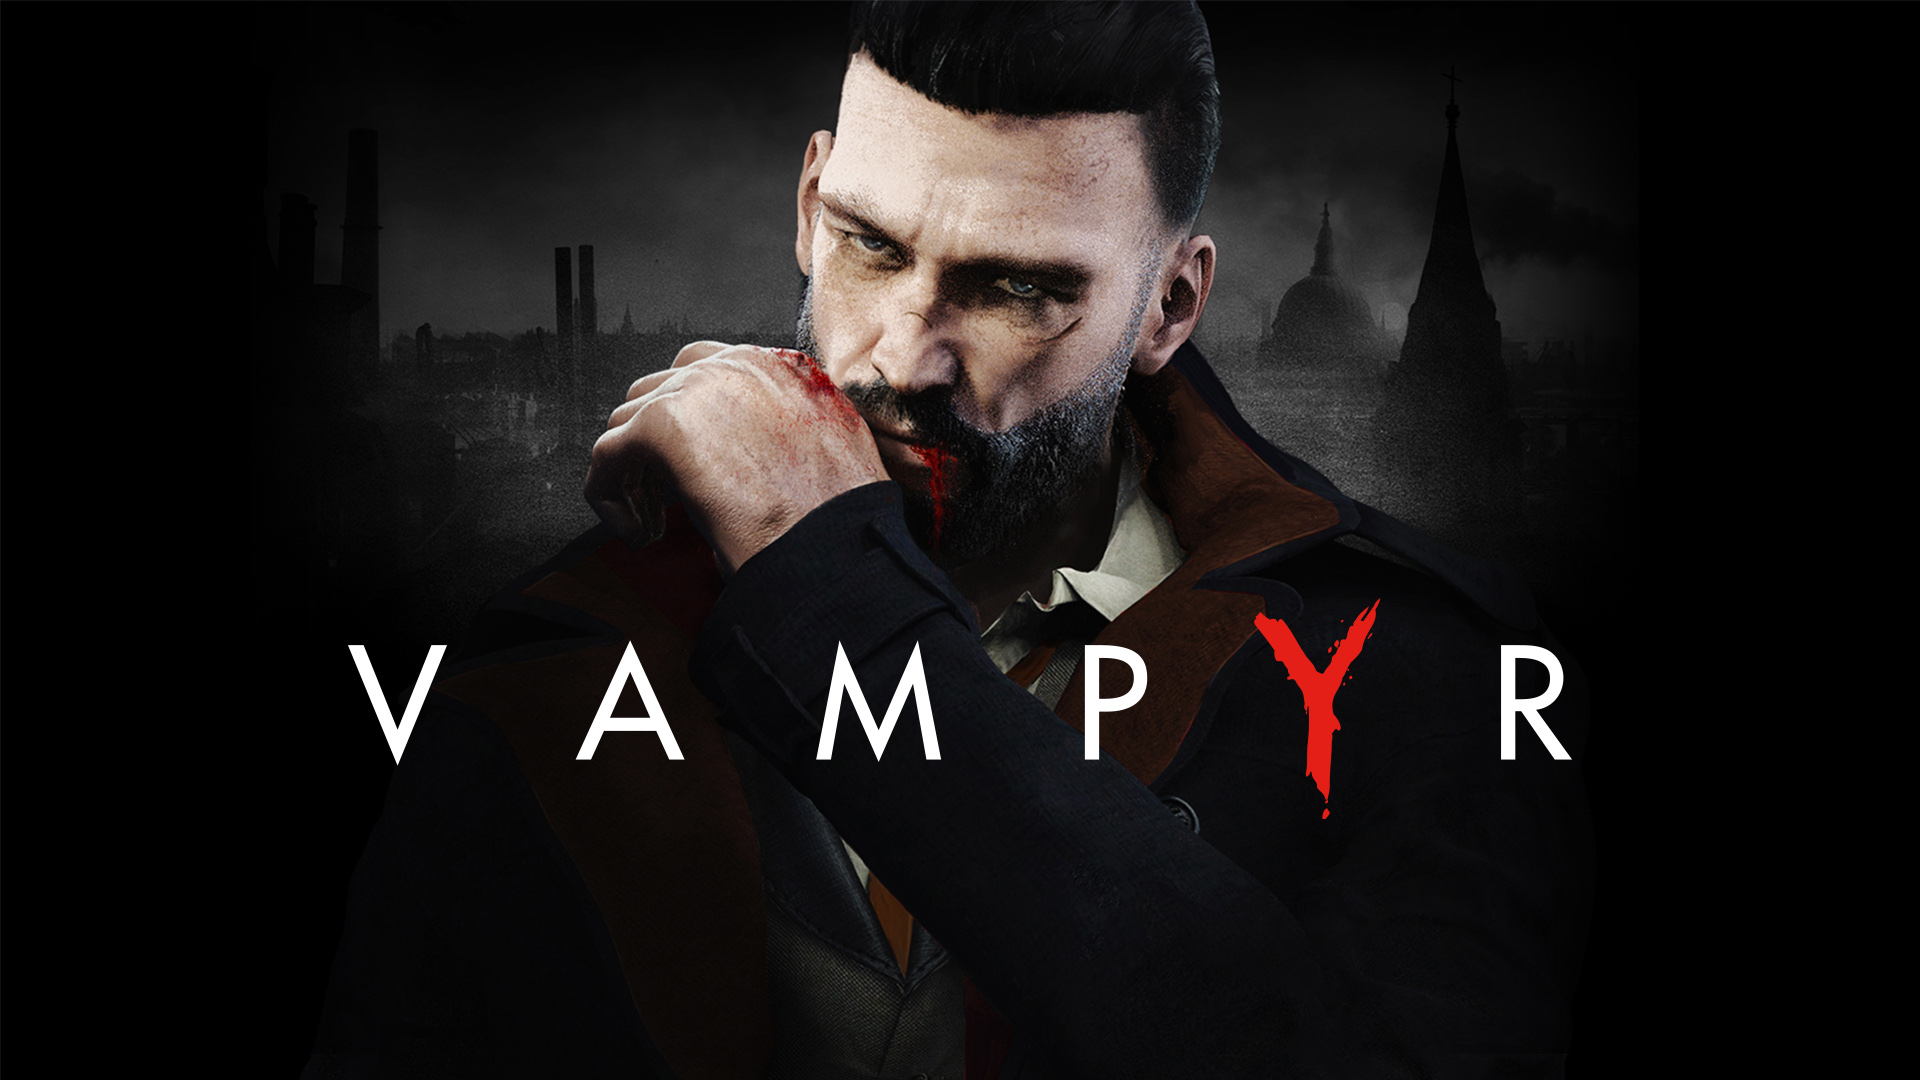 Will You Embrace The Monster Within, Or Fight It? 'Vampyr' Is Available Now!